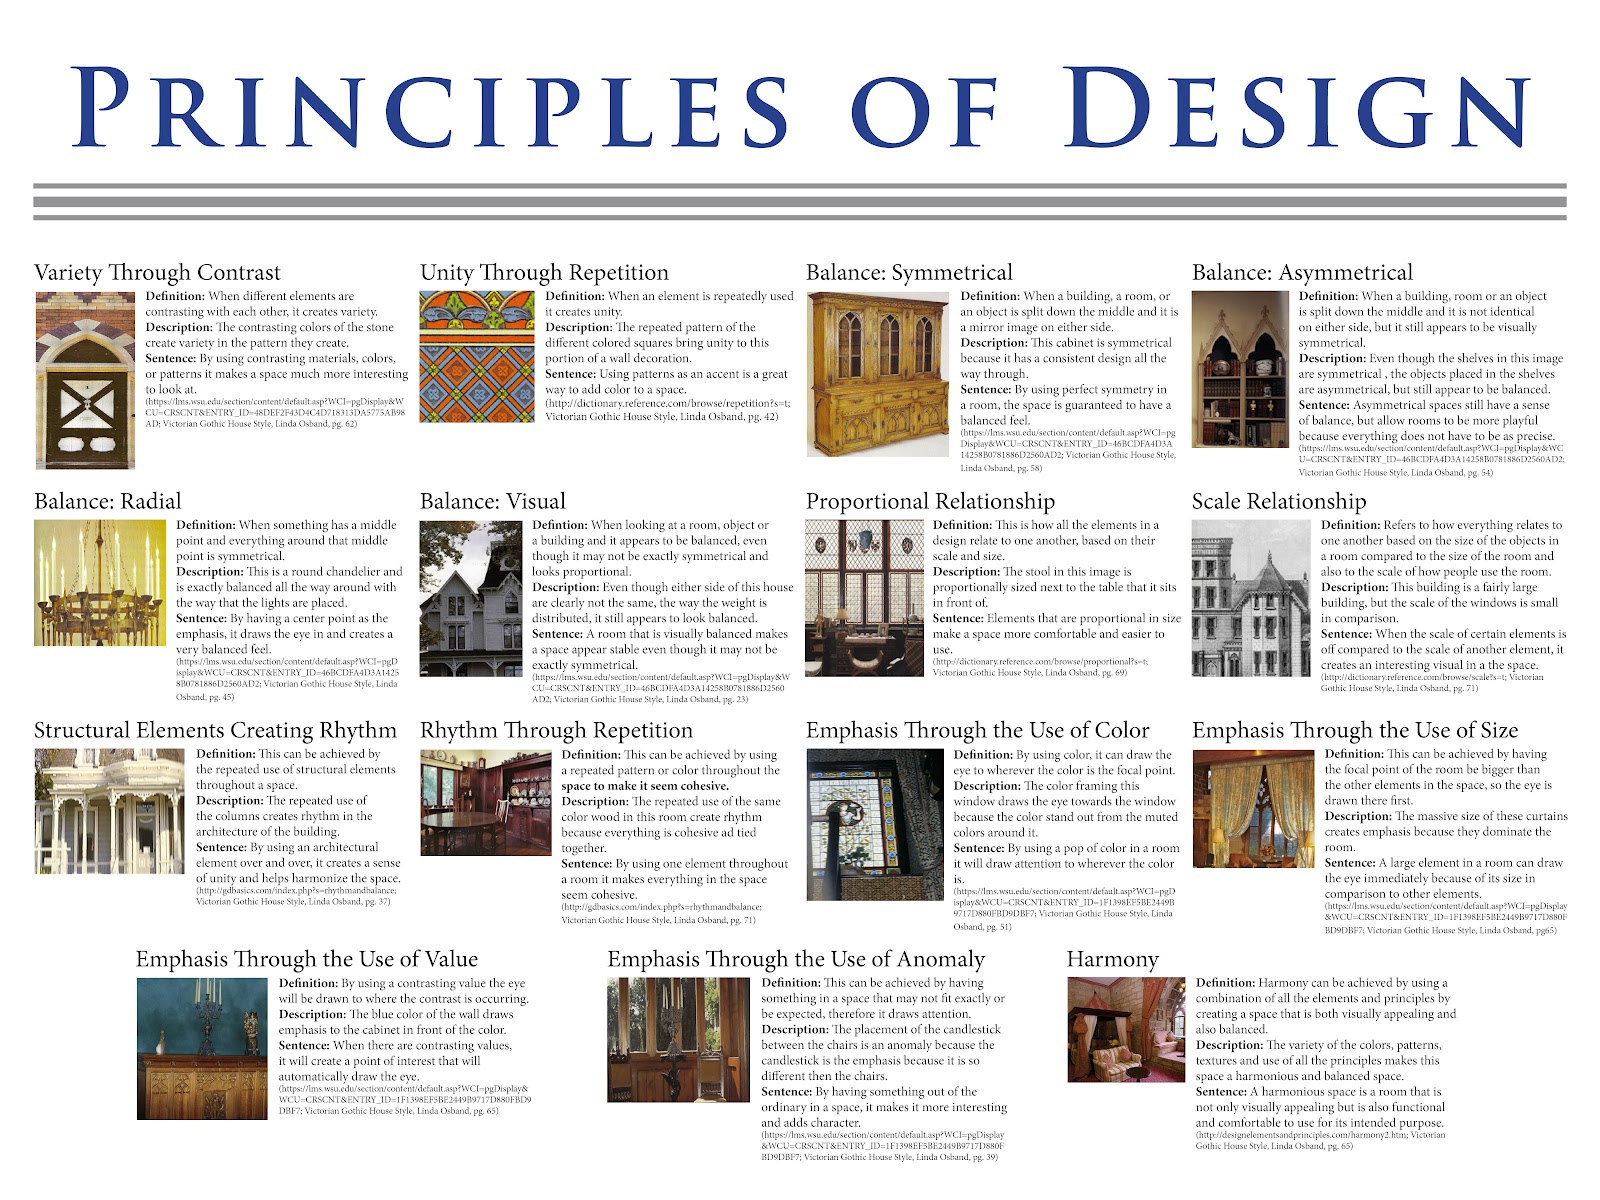 interior design principles Basic principles of landscape design 1 2 properties of lines the properties of lines determine how people respond to the landscape, both emotionally and physically.